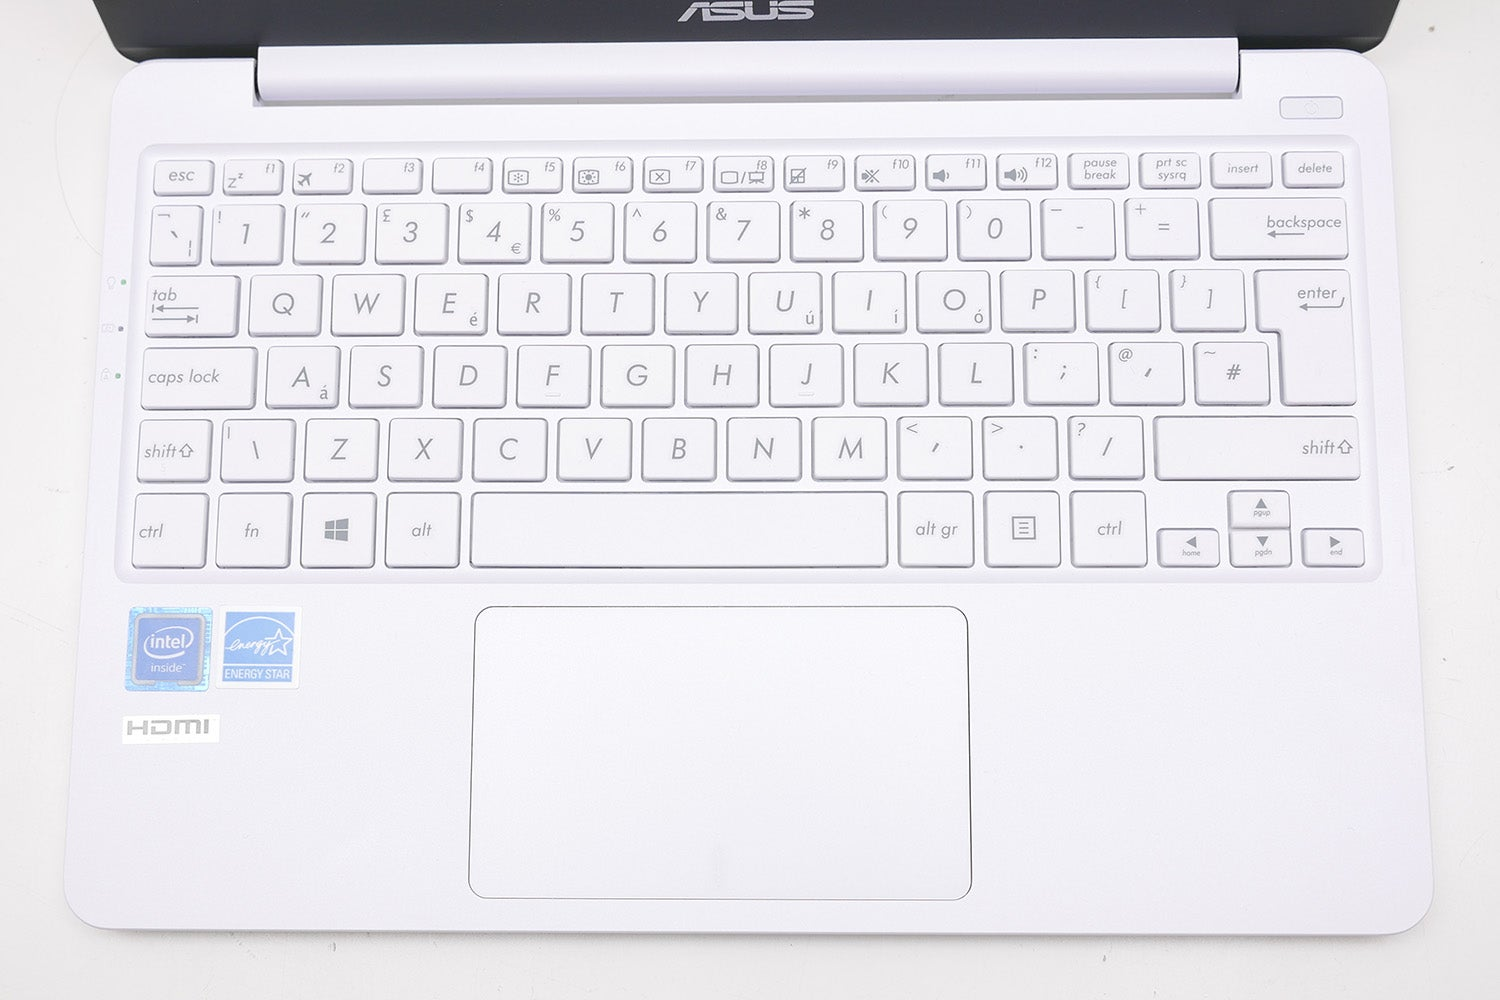 Asus Vivobook E12 E203na Review Trusted Reviews Notebook E203mah Fd411t Star Grey As For The Trackpad Its Okay Tracking Is Reasonably Accurate And A Decent Size However Click Action Isnt Anything To Shout About